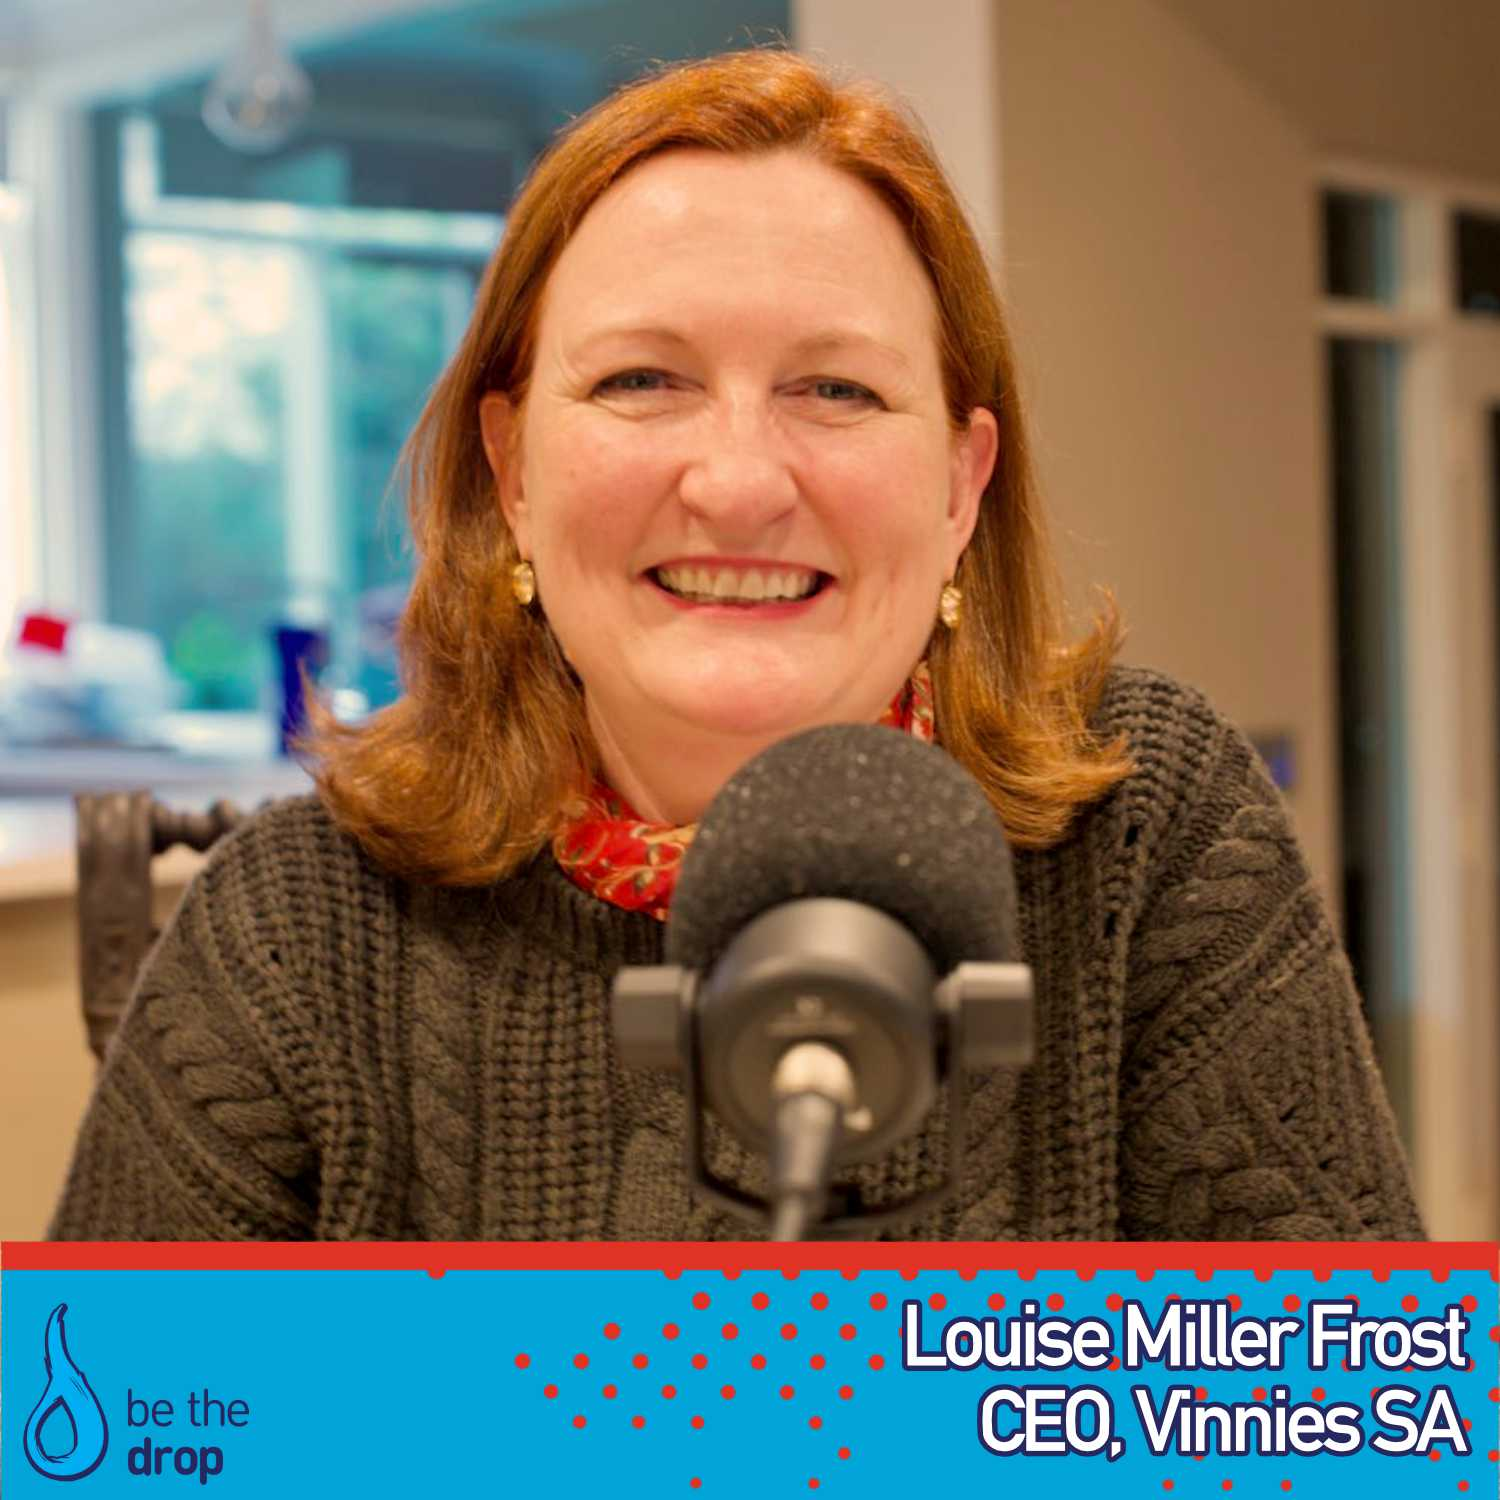 Louise Miller Frost: Vinnies SA First Female CEO [Podcast]